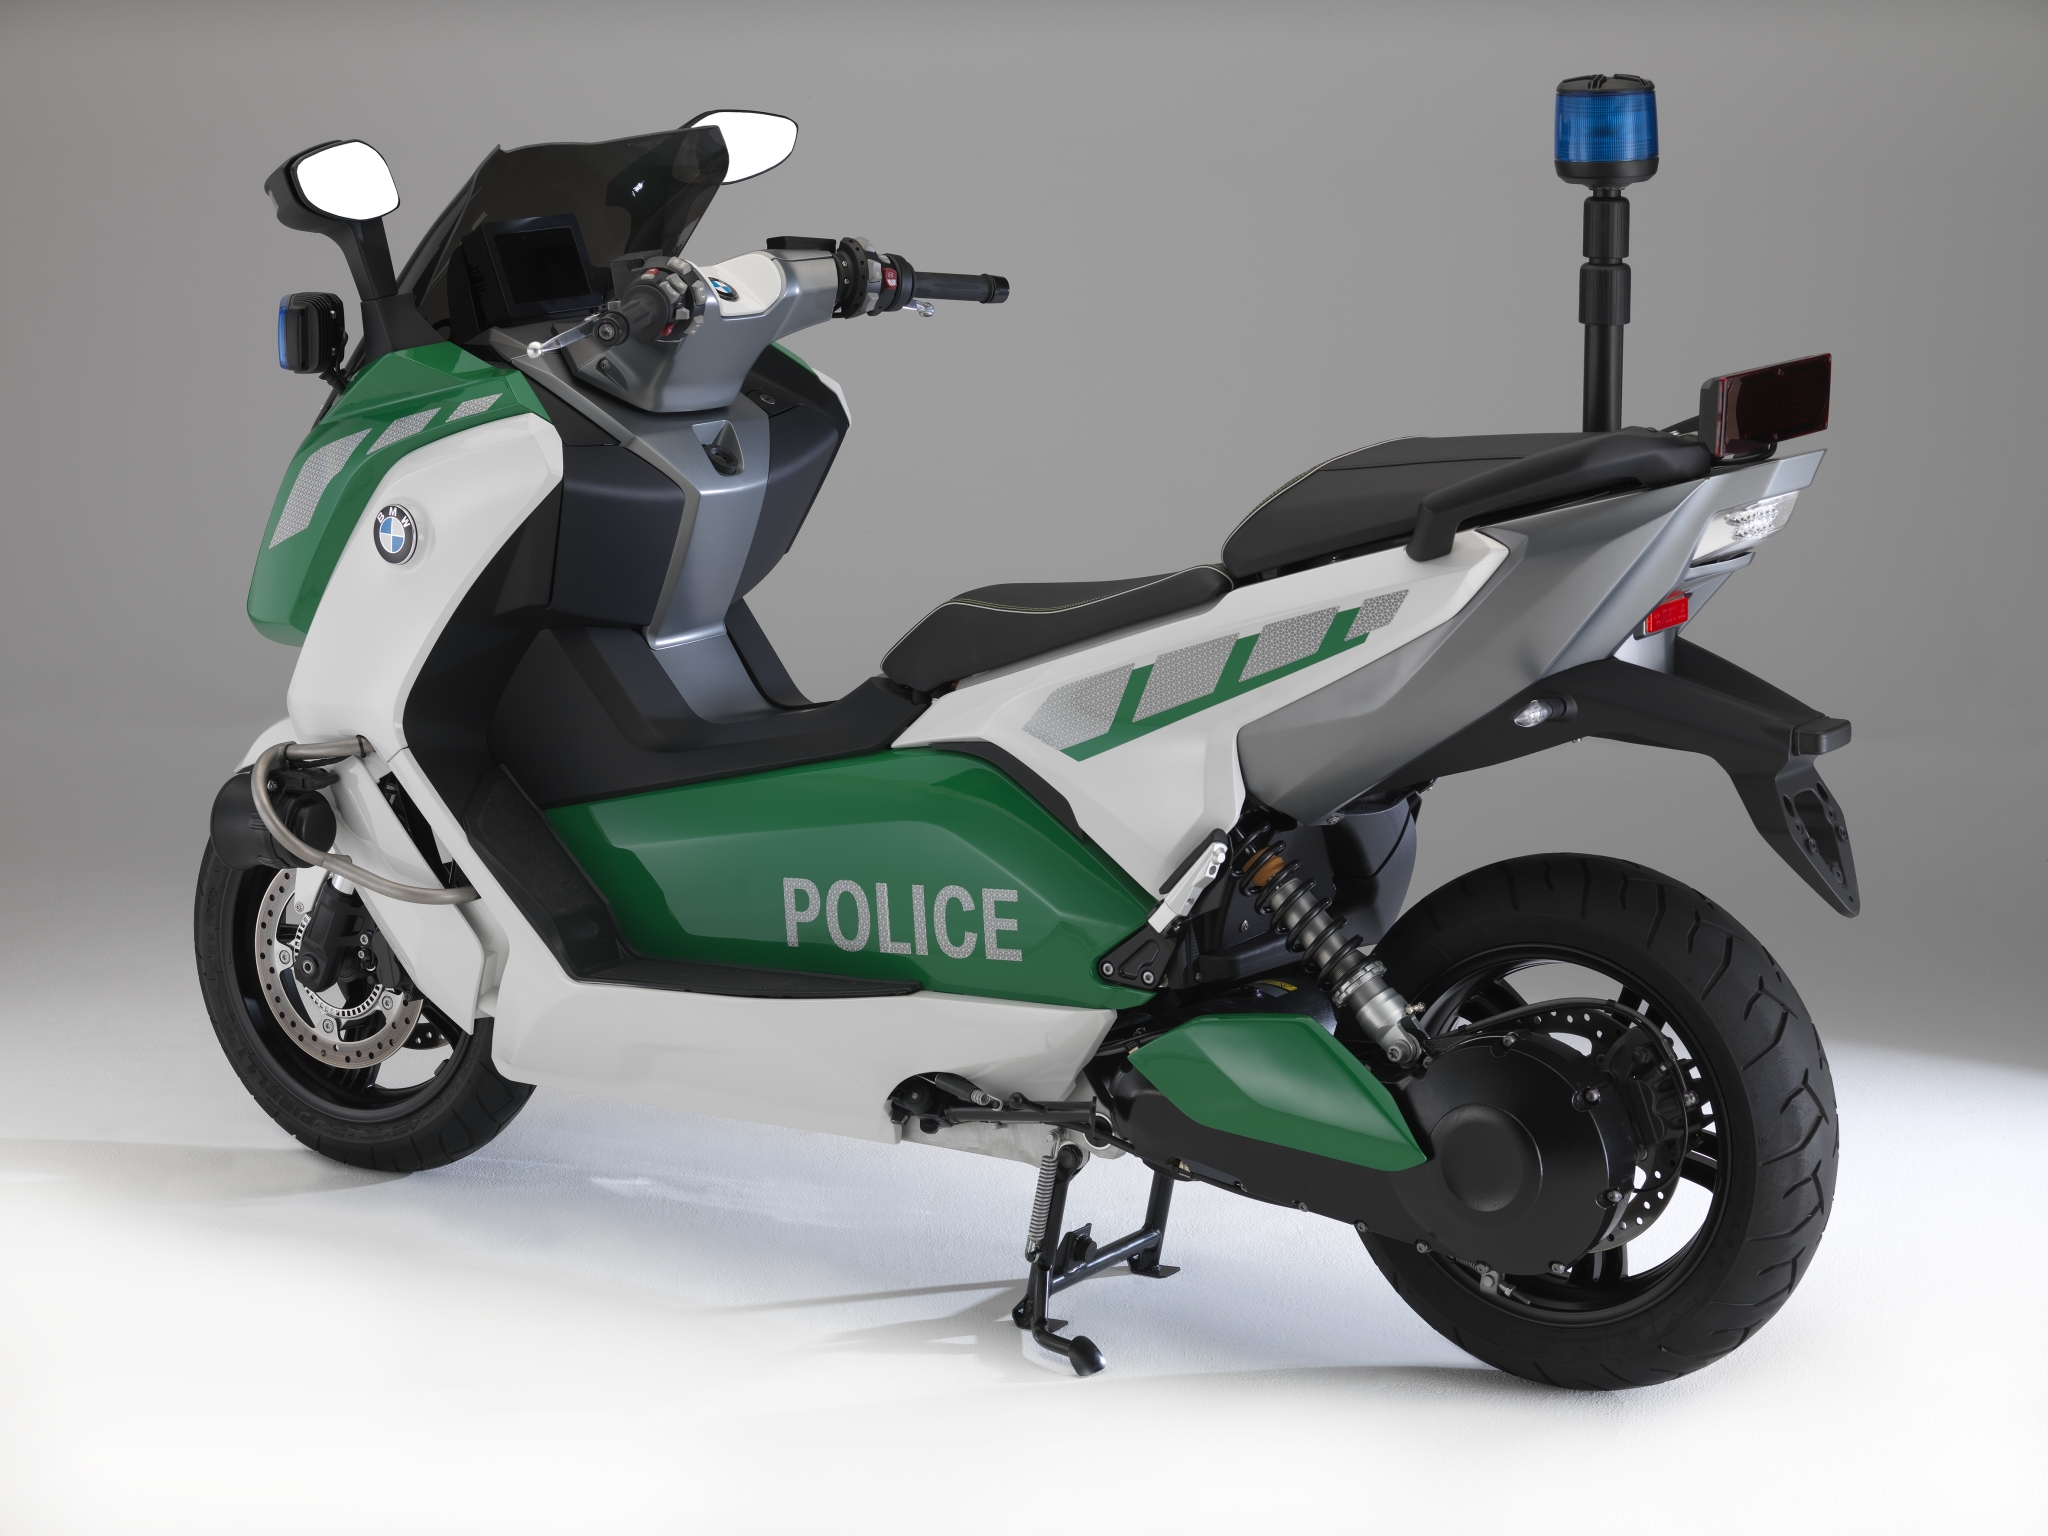 bmw unveils c 600 police scooter at 2013 milipol. Black Bedroom Furniture Sets. Home Design Ideas